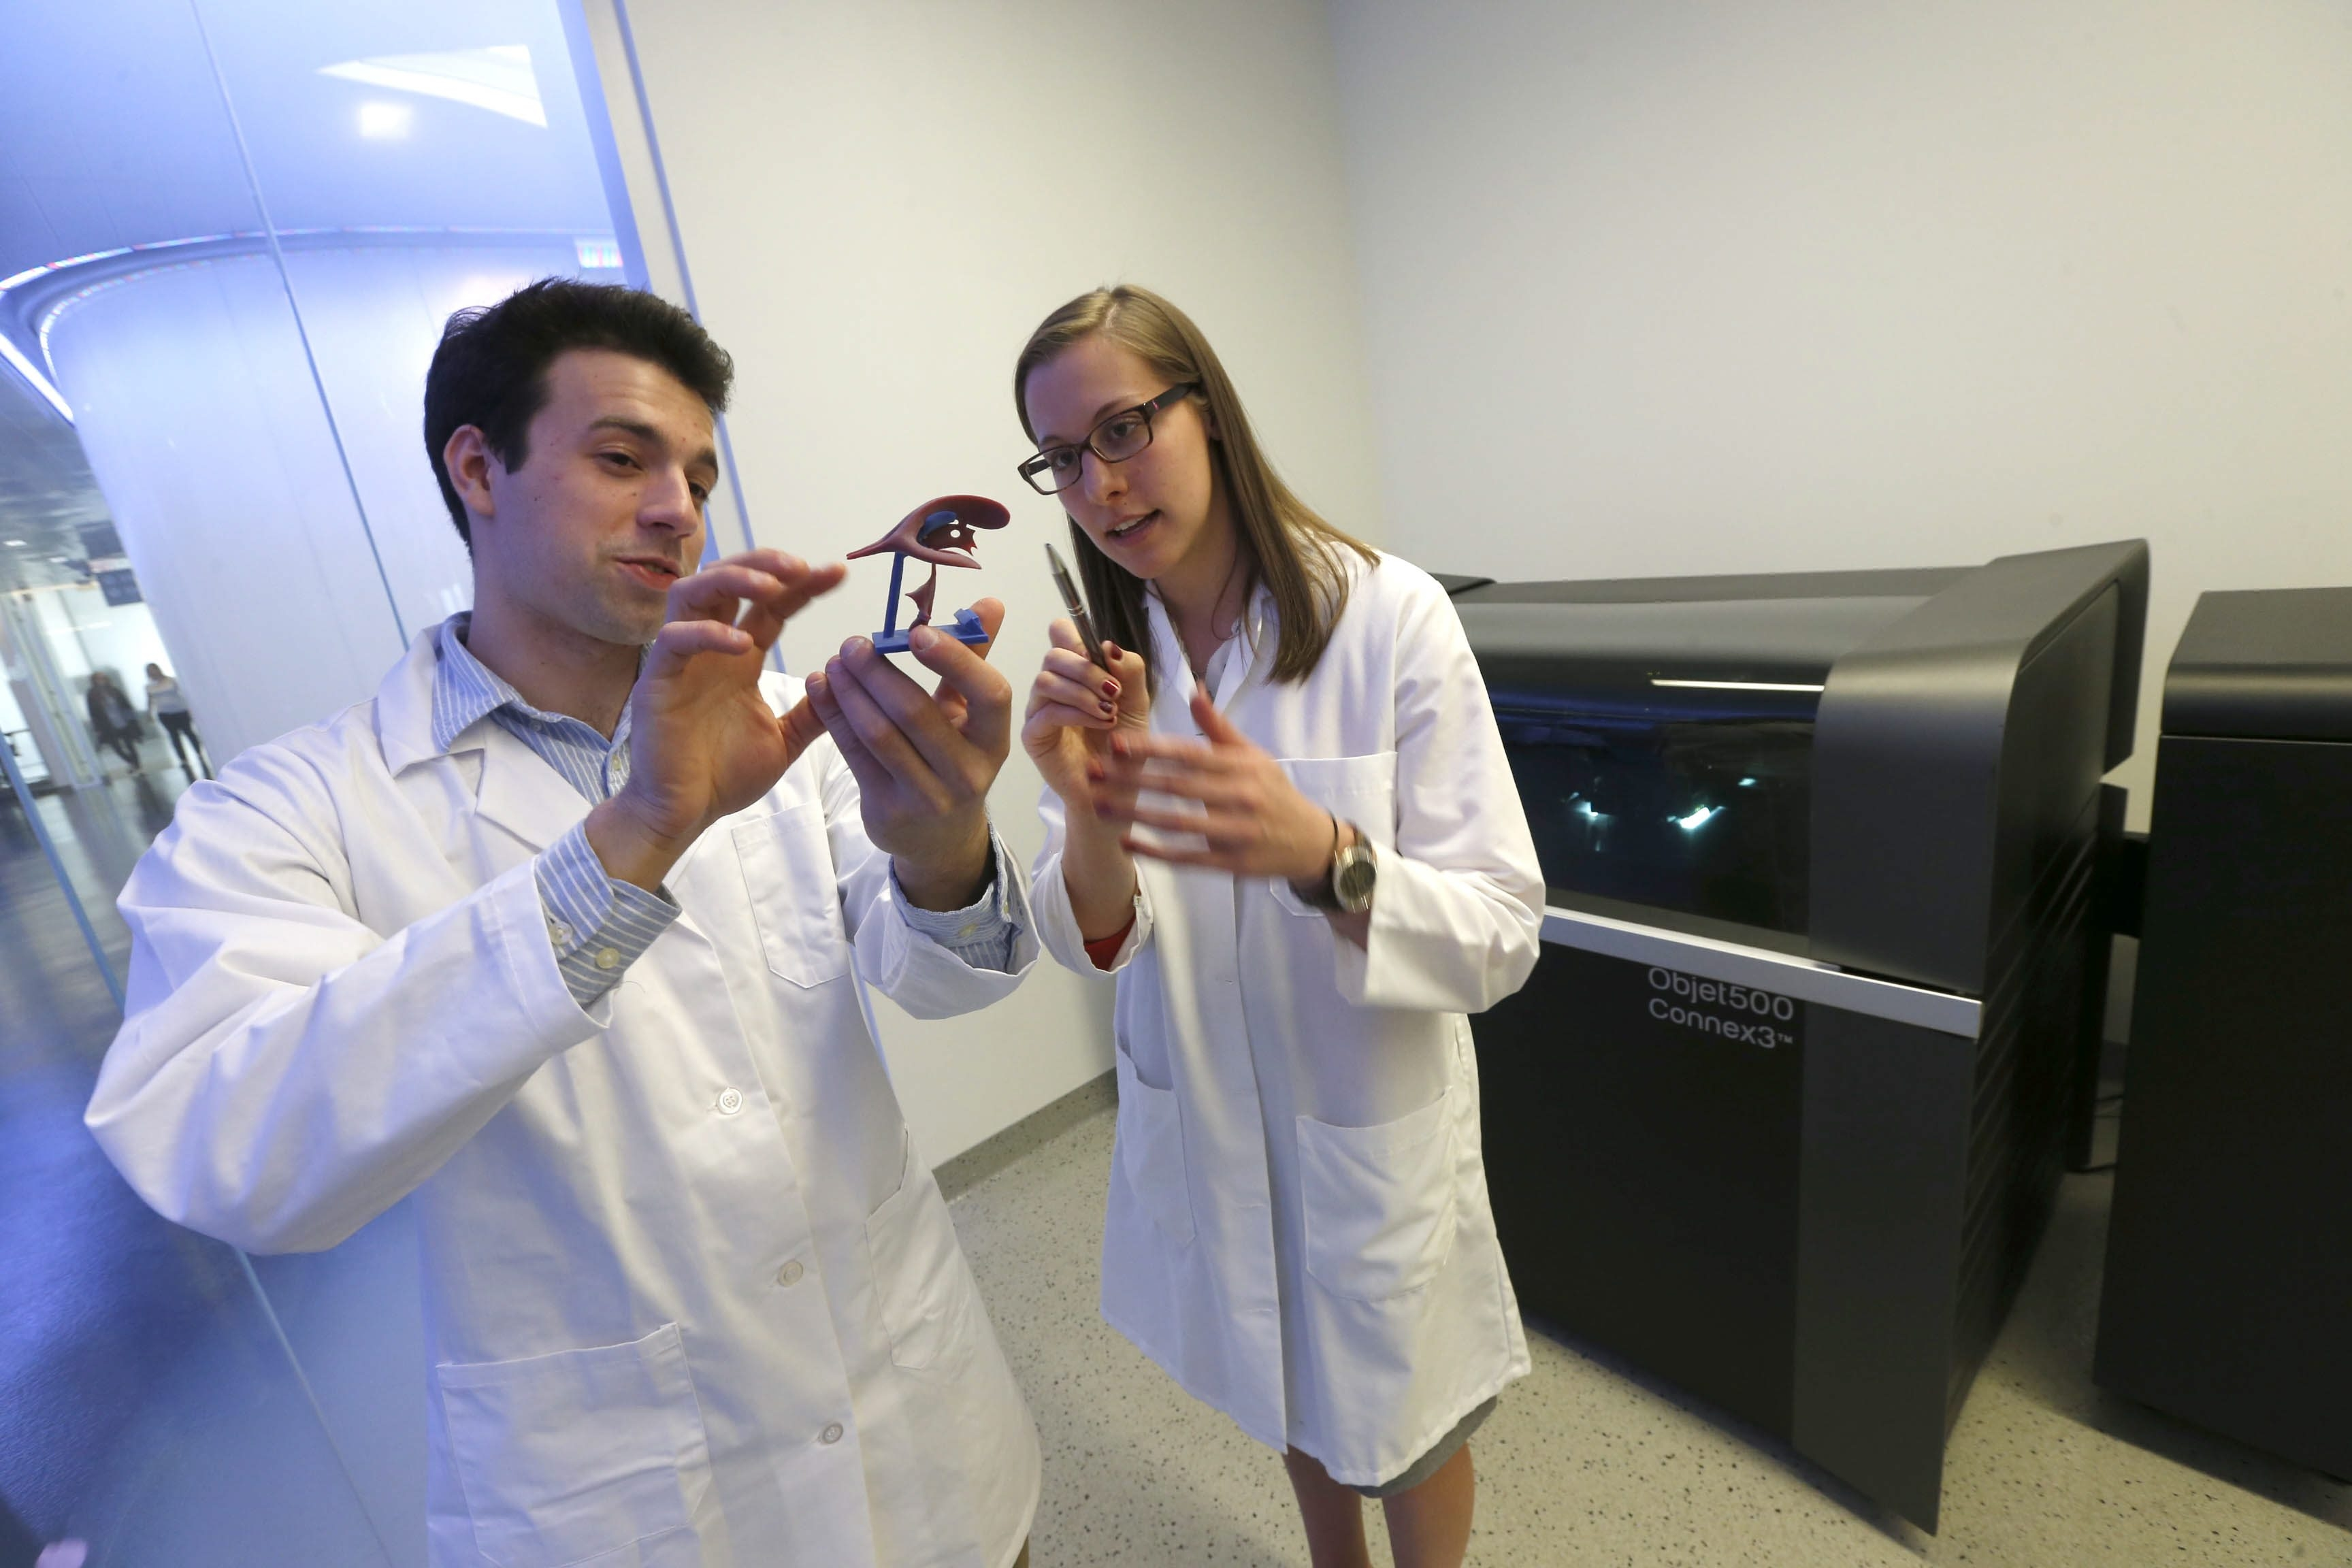 Richard Izzo, a UB graduate student, and Karen Meess, a Jacobs Institute biomedical engineer, discuss a printed 3D model of part of a brain.